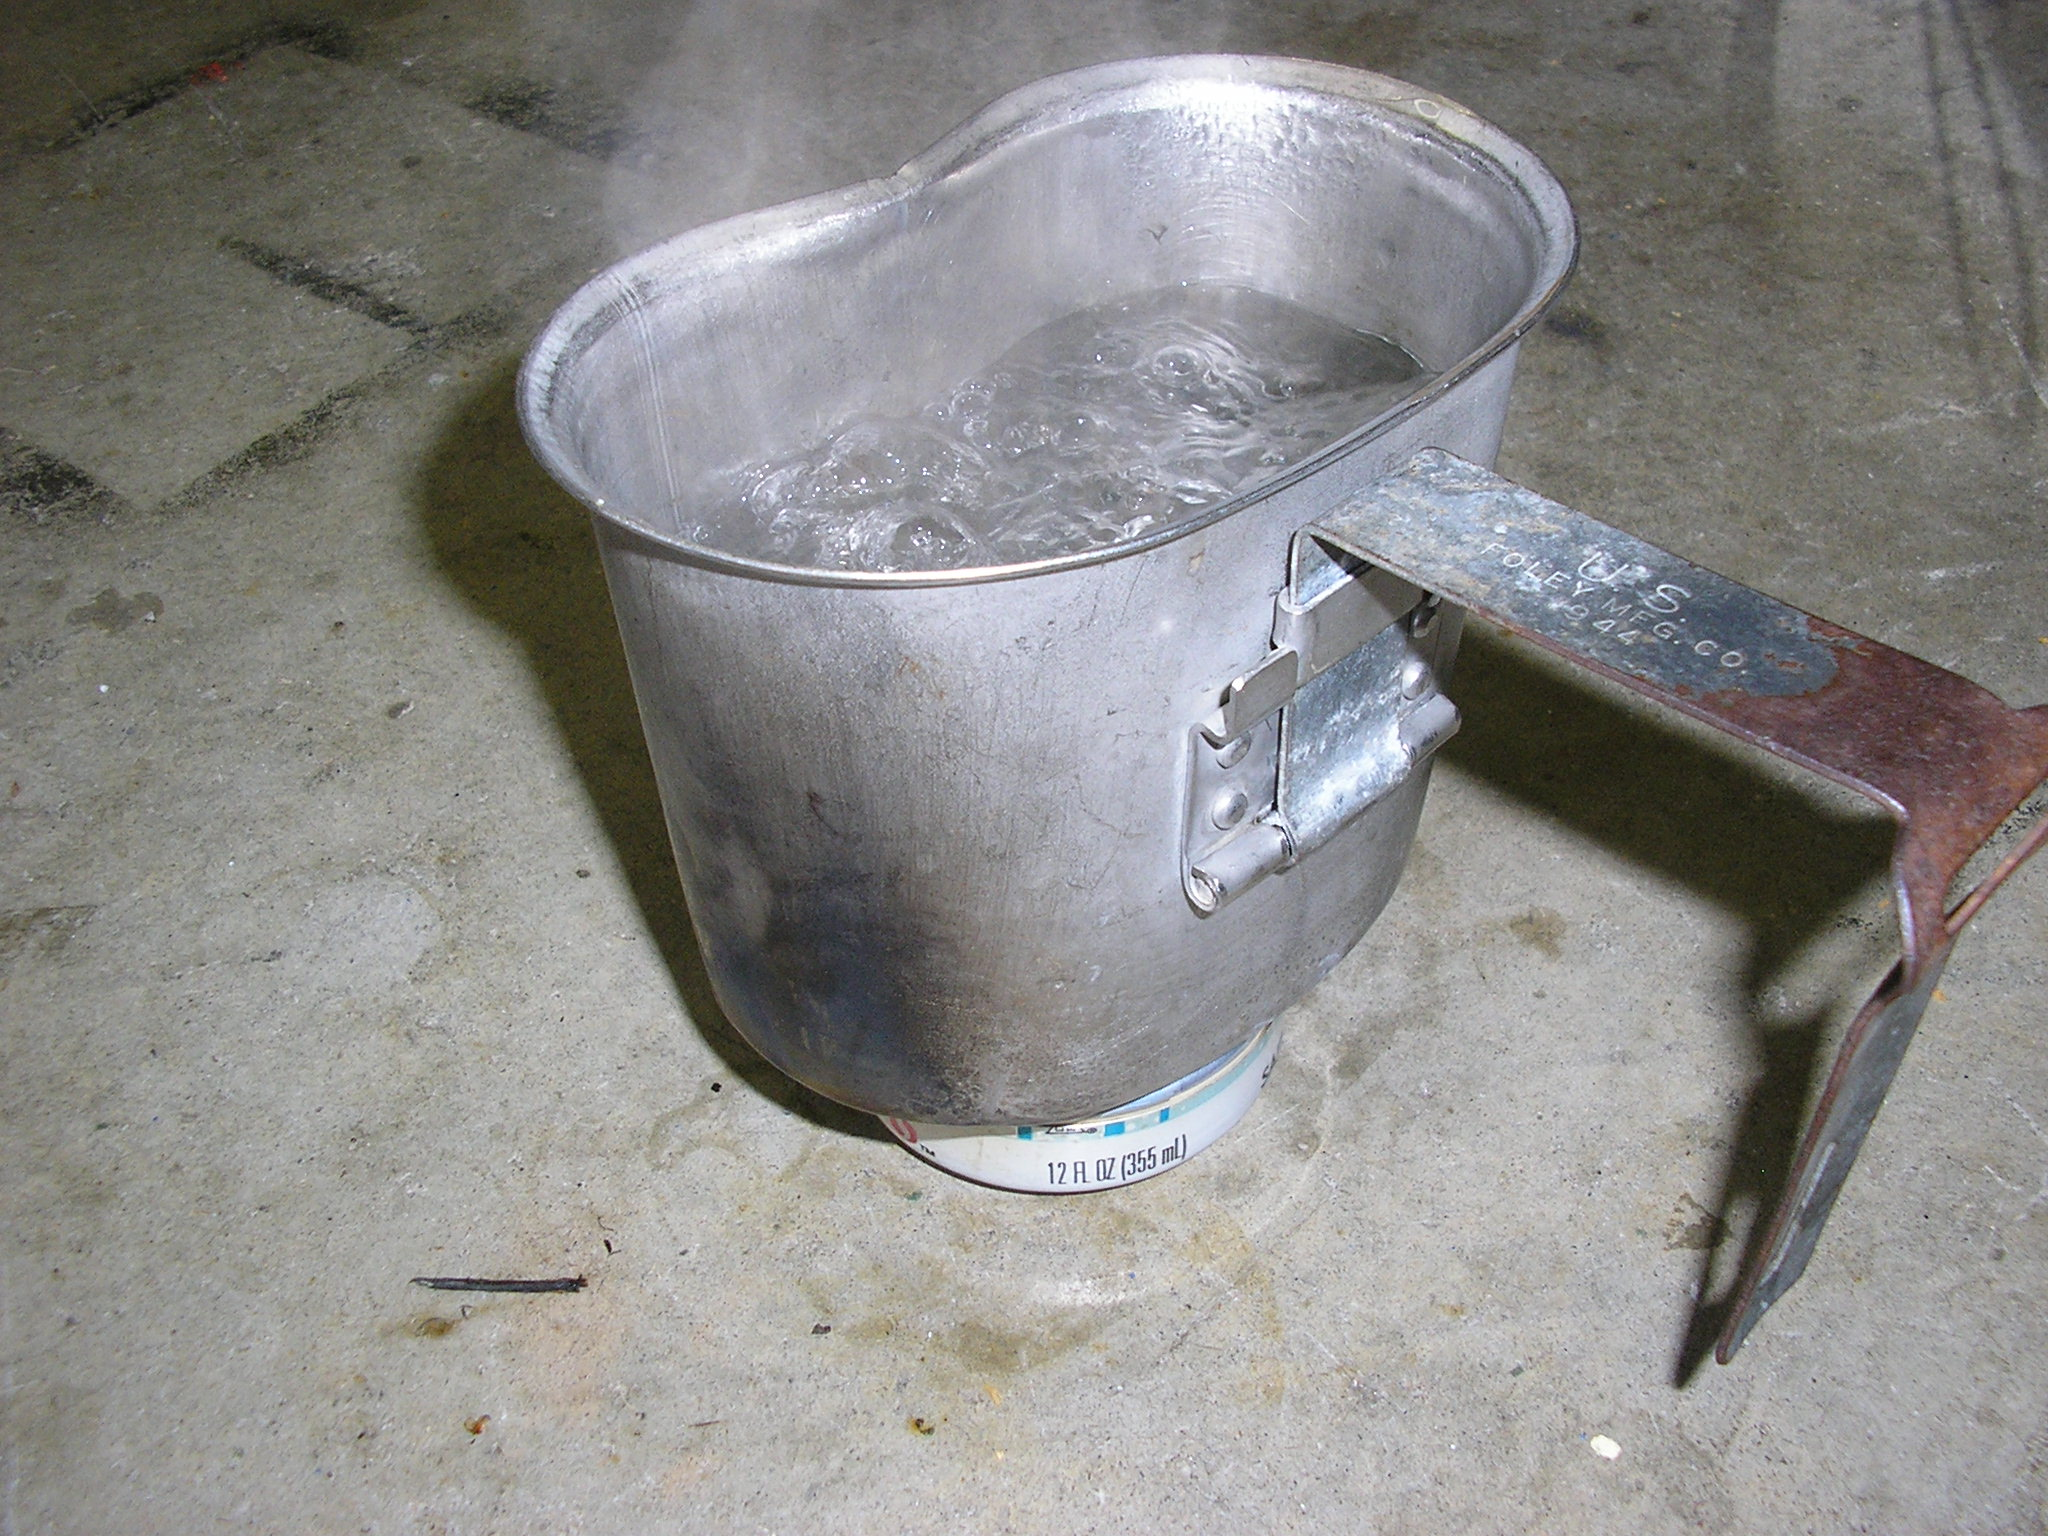 Alcohol Stove direct cup placement